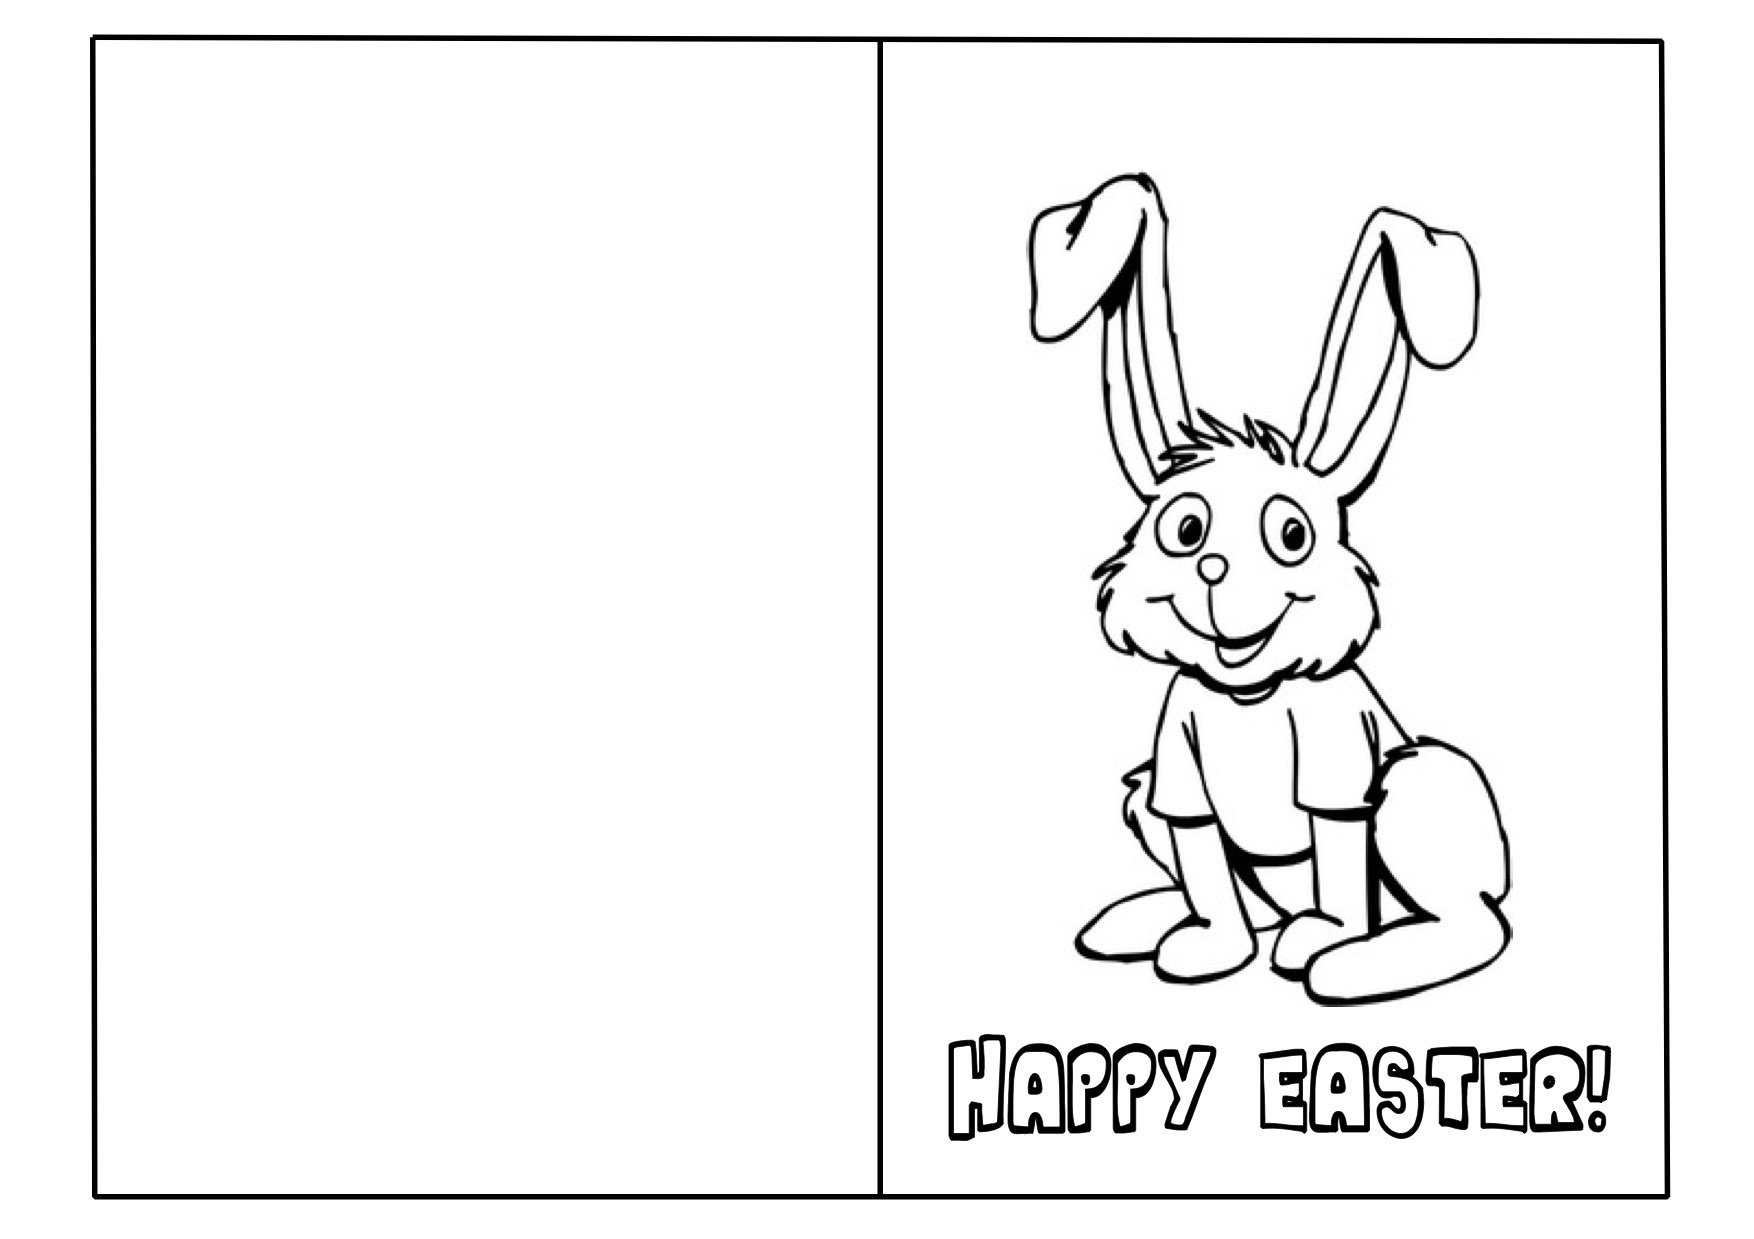 32 Free Printable Easter Cards | Kittybabylove - Free Printable Cards To Color